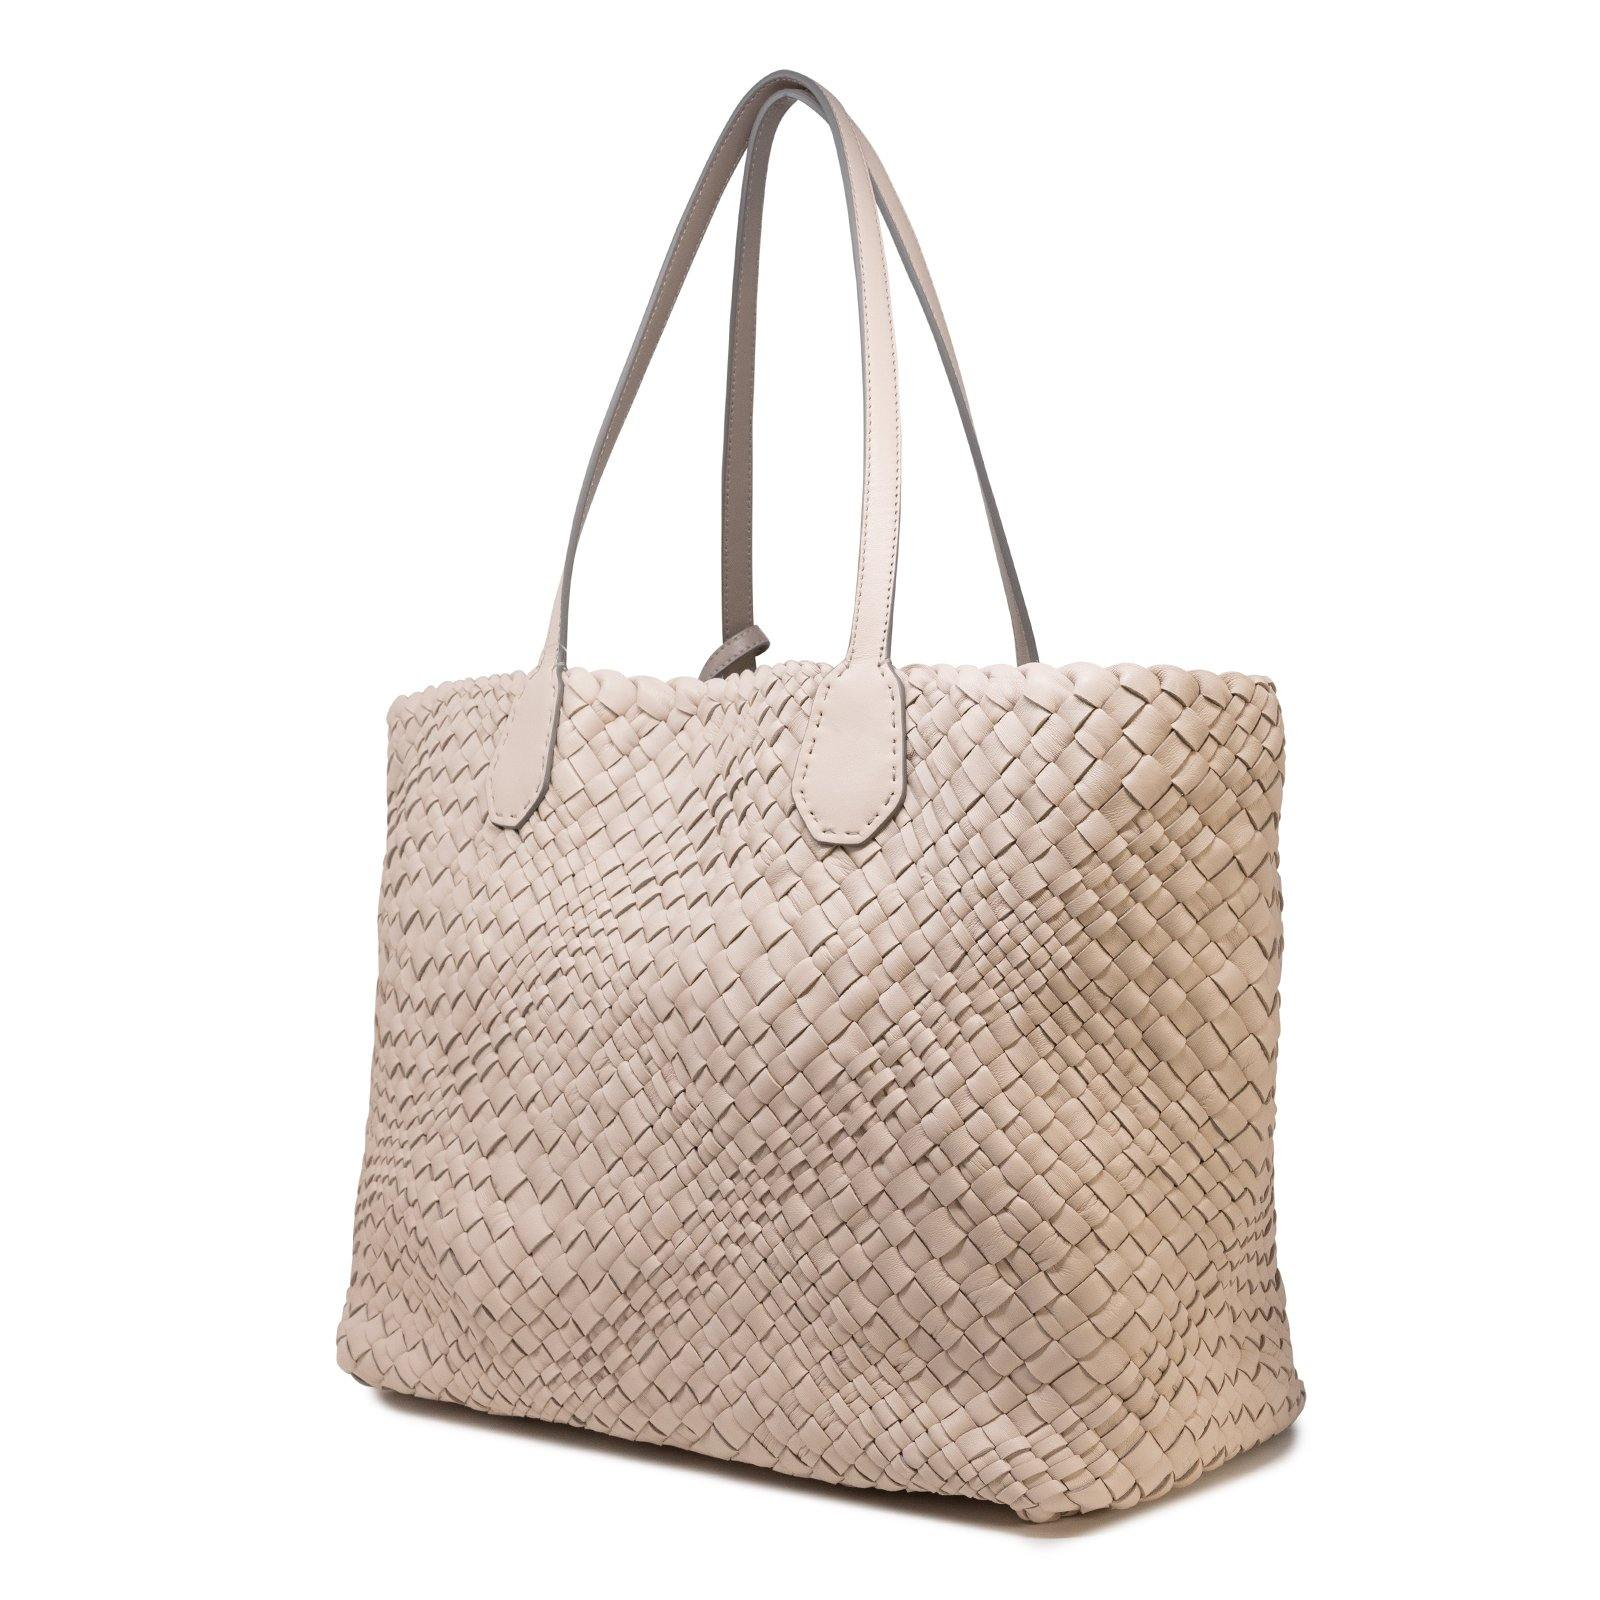 Women Leather Intreccio Optical Bag in Sabbia and Taupe